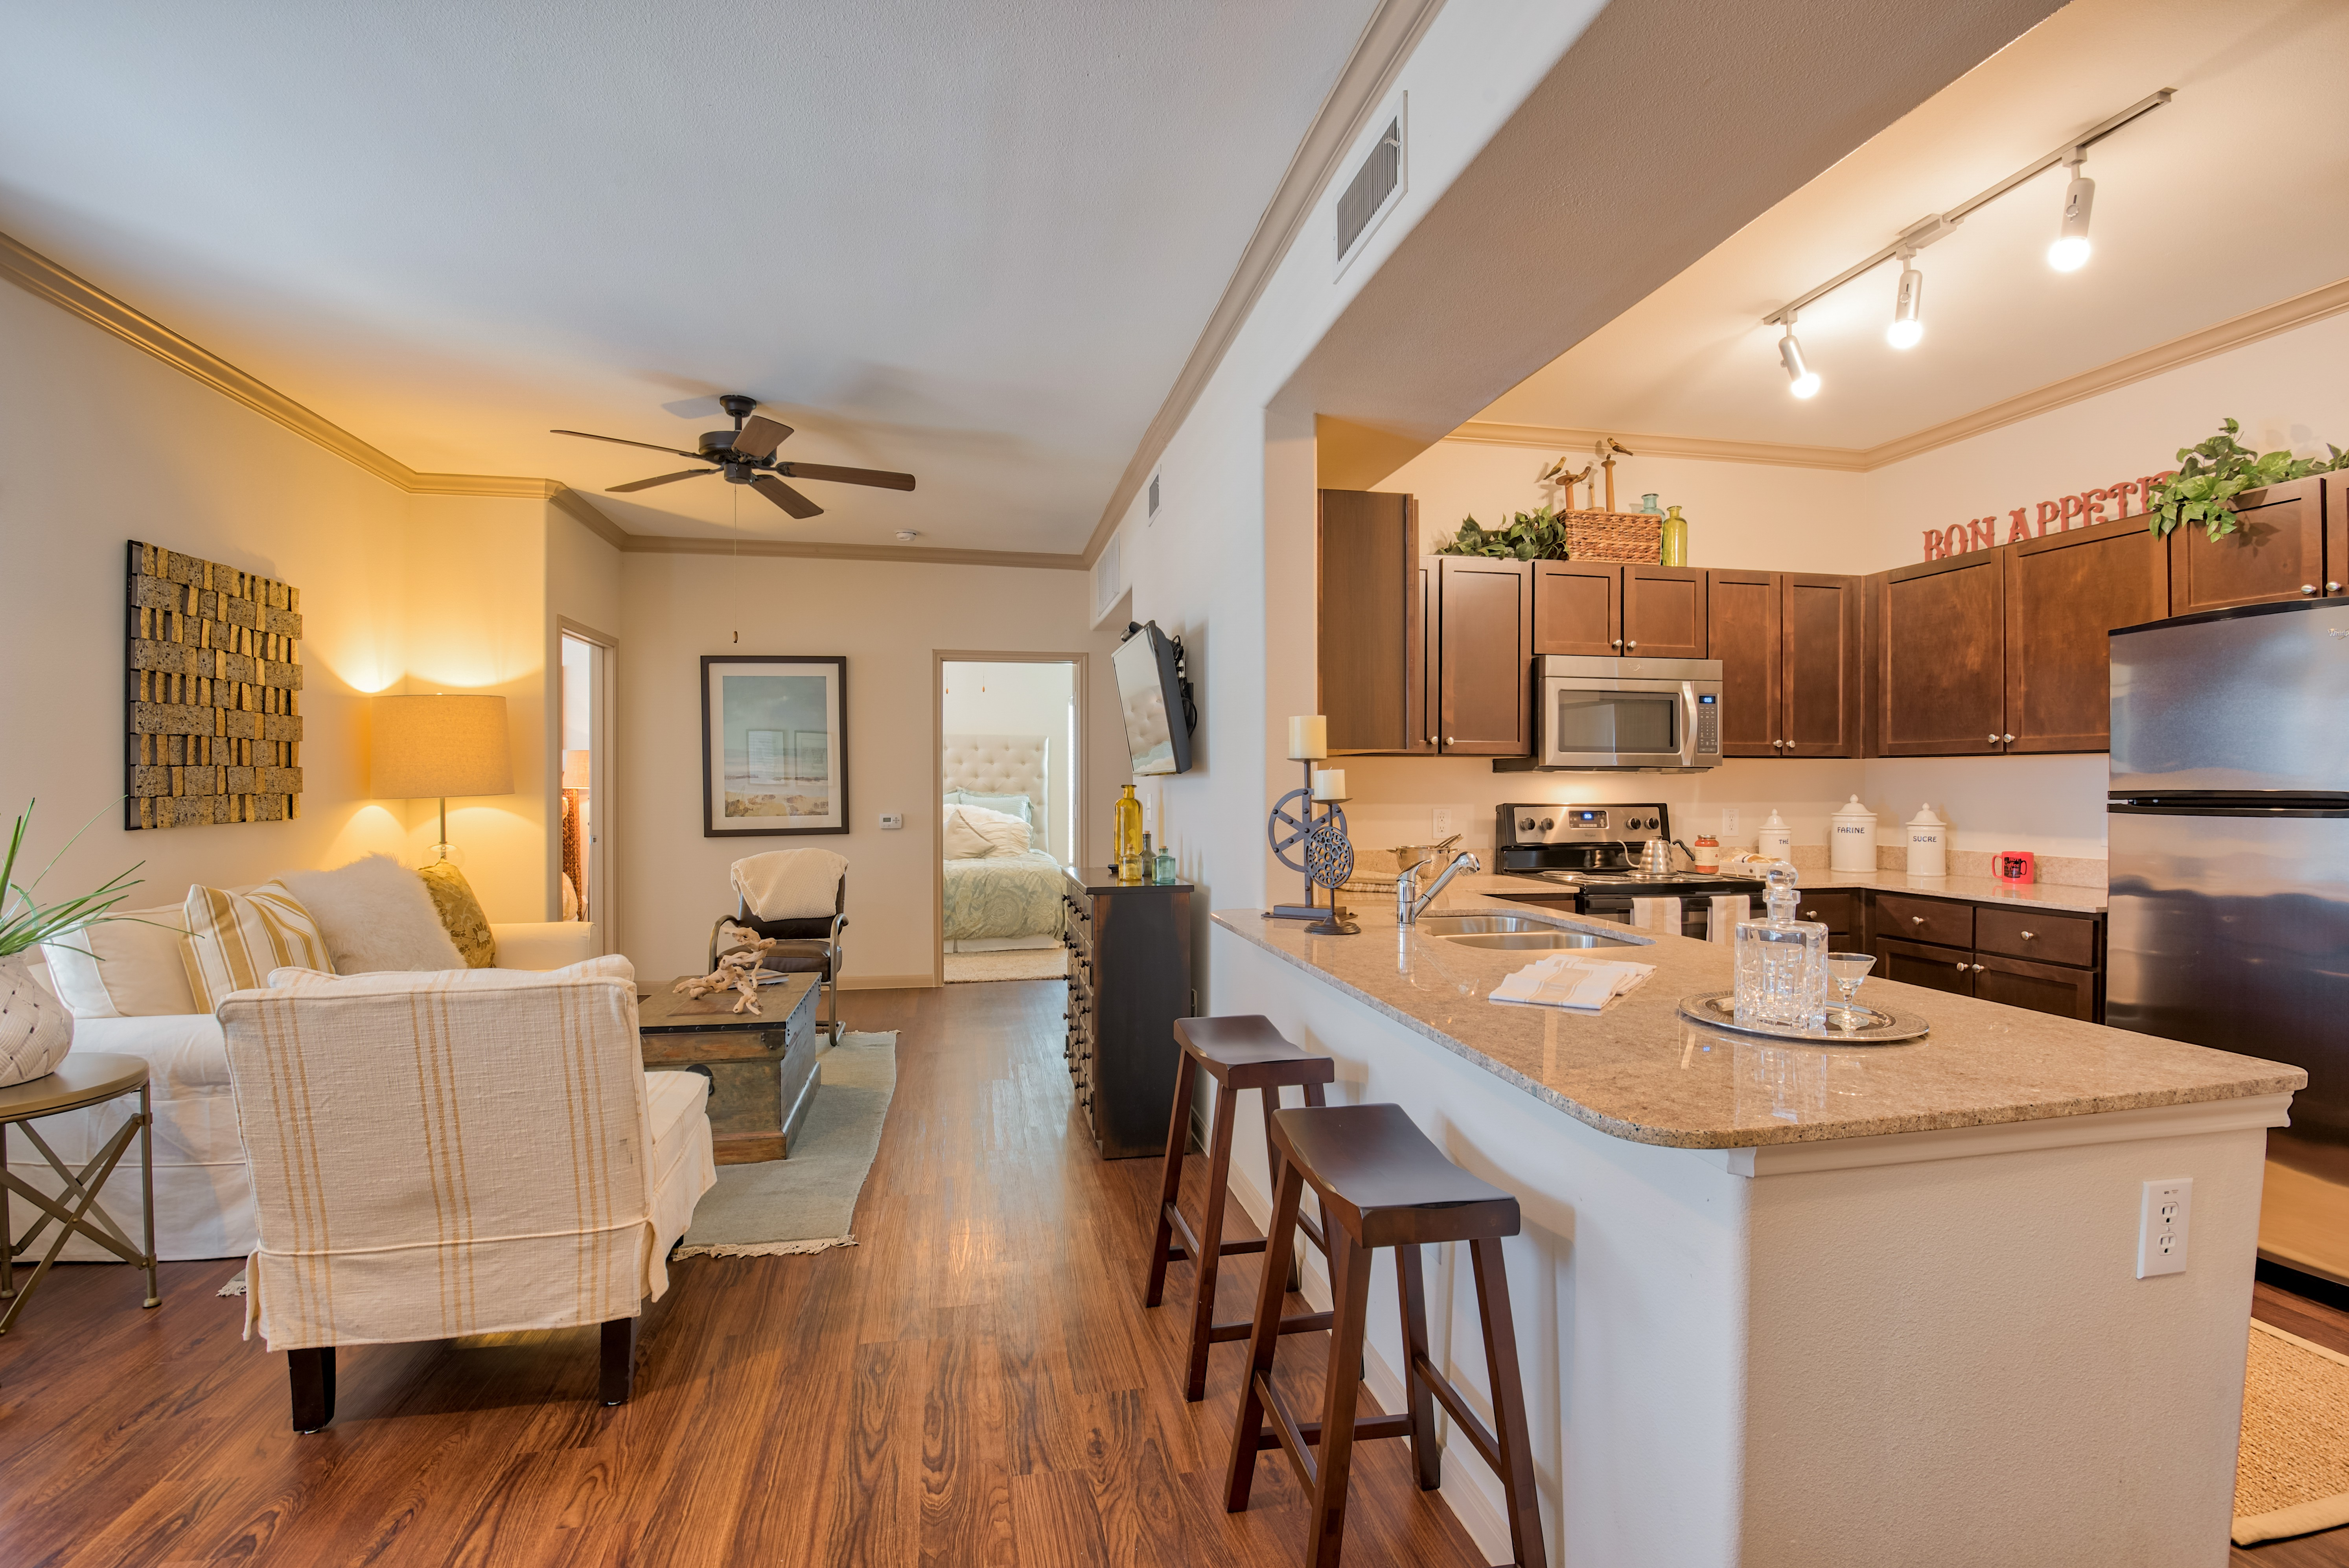 The Waterford At Summer Park for rent